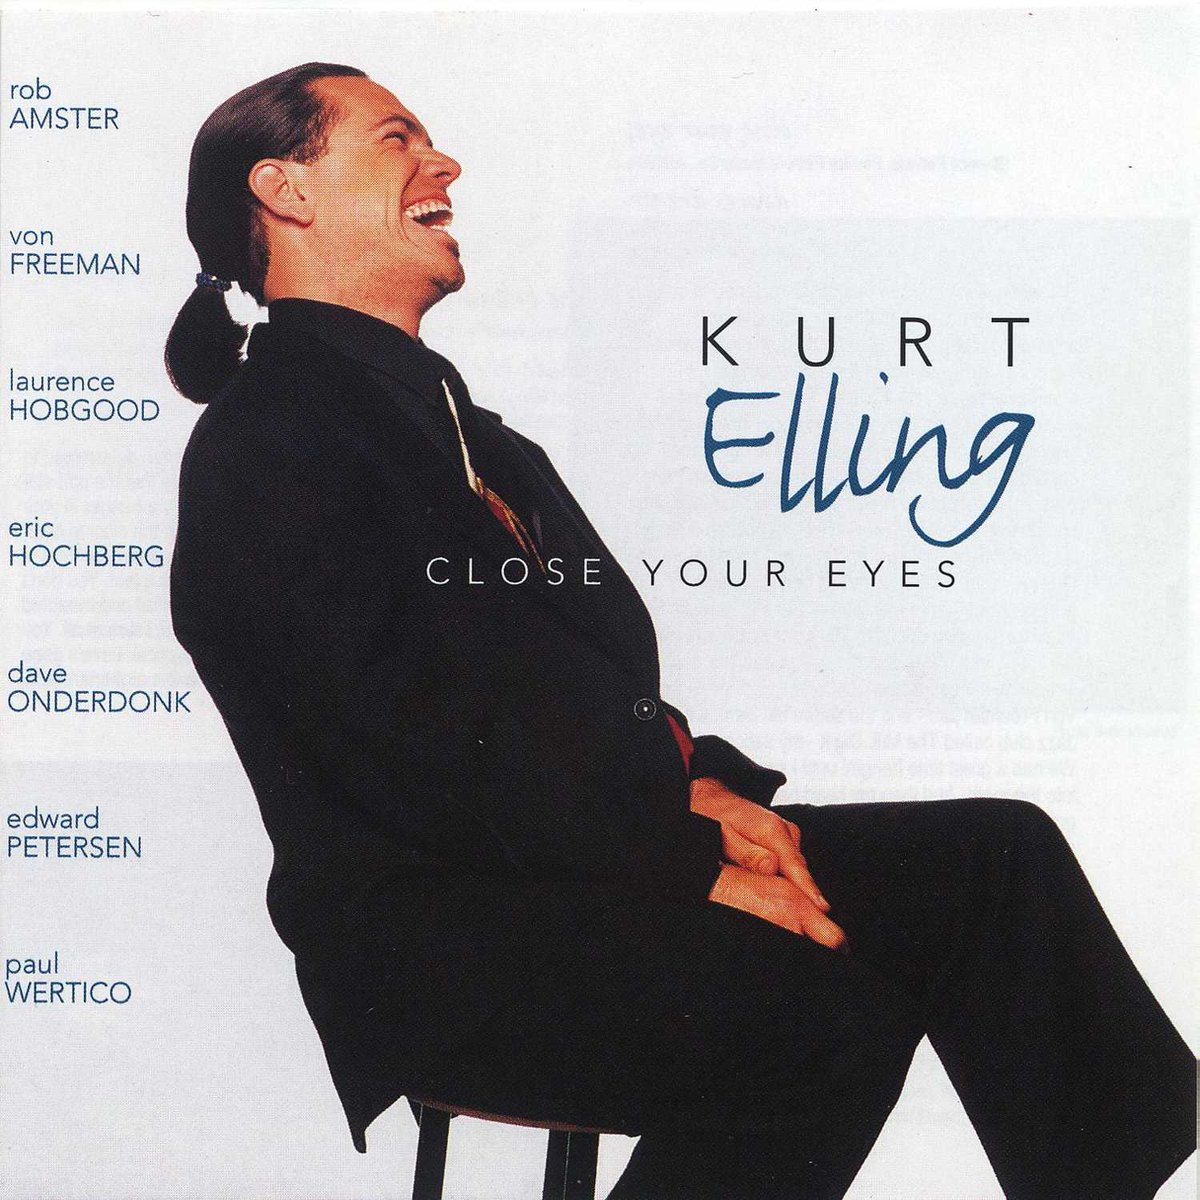 25 years ago today #KurtElling was in the studio recording his debut album 'Close Your Eyes,' Hear the title track on our Jazz Vocals playlist: https://t.co/8LbLRN456h  #OTD